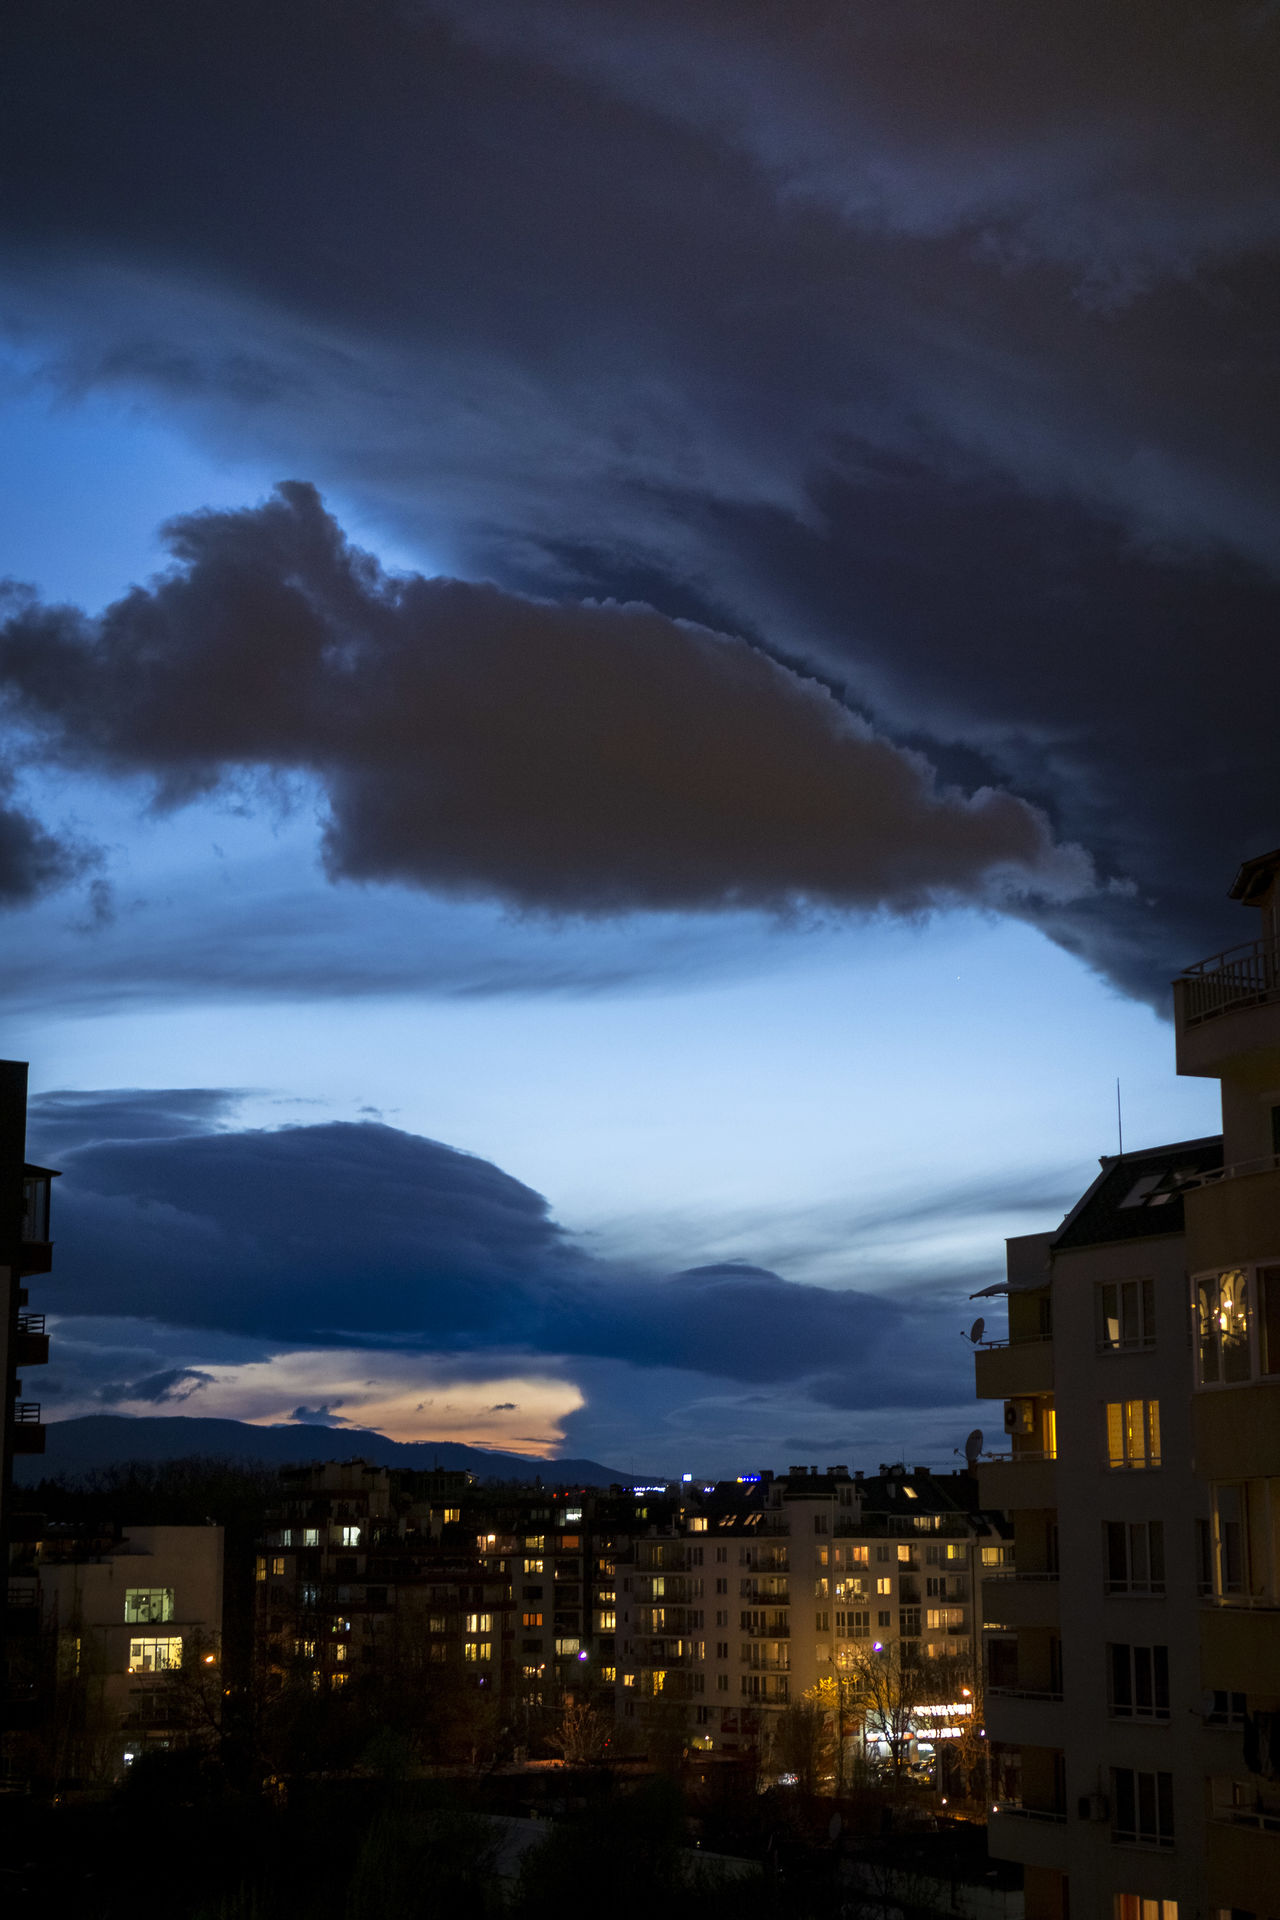 After Sunset Alien Architecture Beauty In Nature Building Exterior Cityscape Clouds Illuminated Iwanttobelieve Night Residential Building Theyarehere UFO